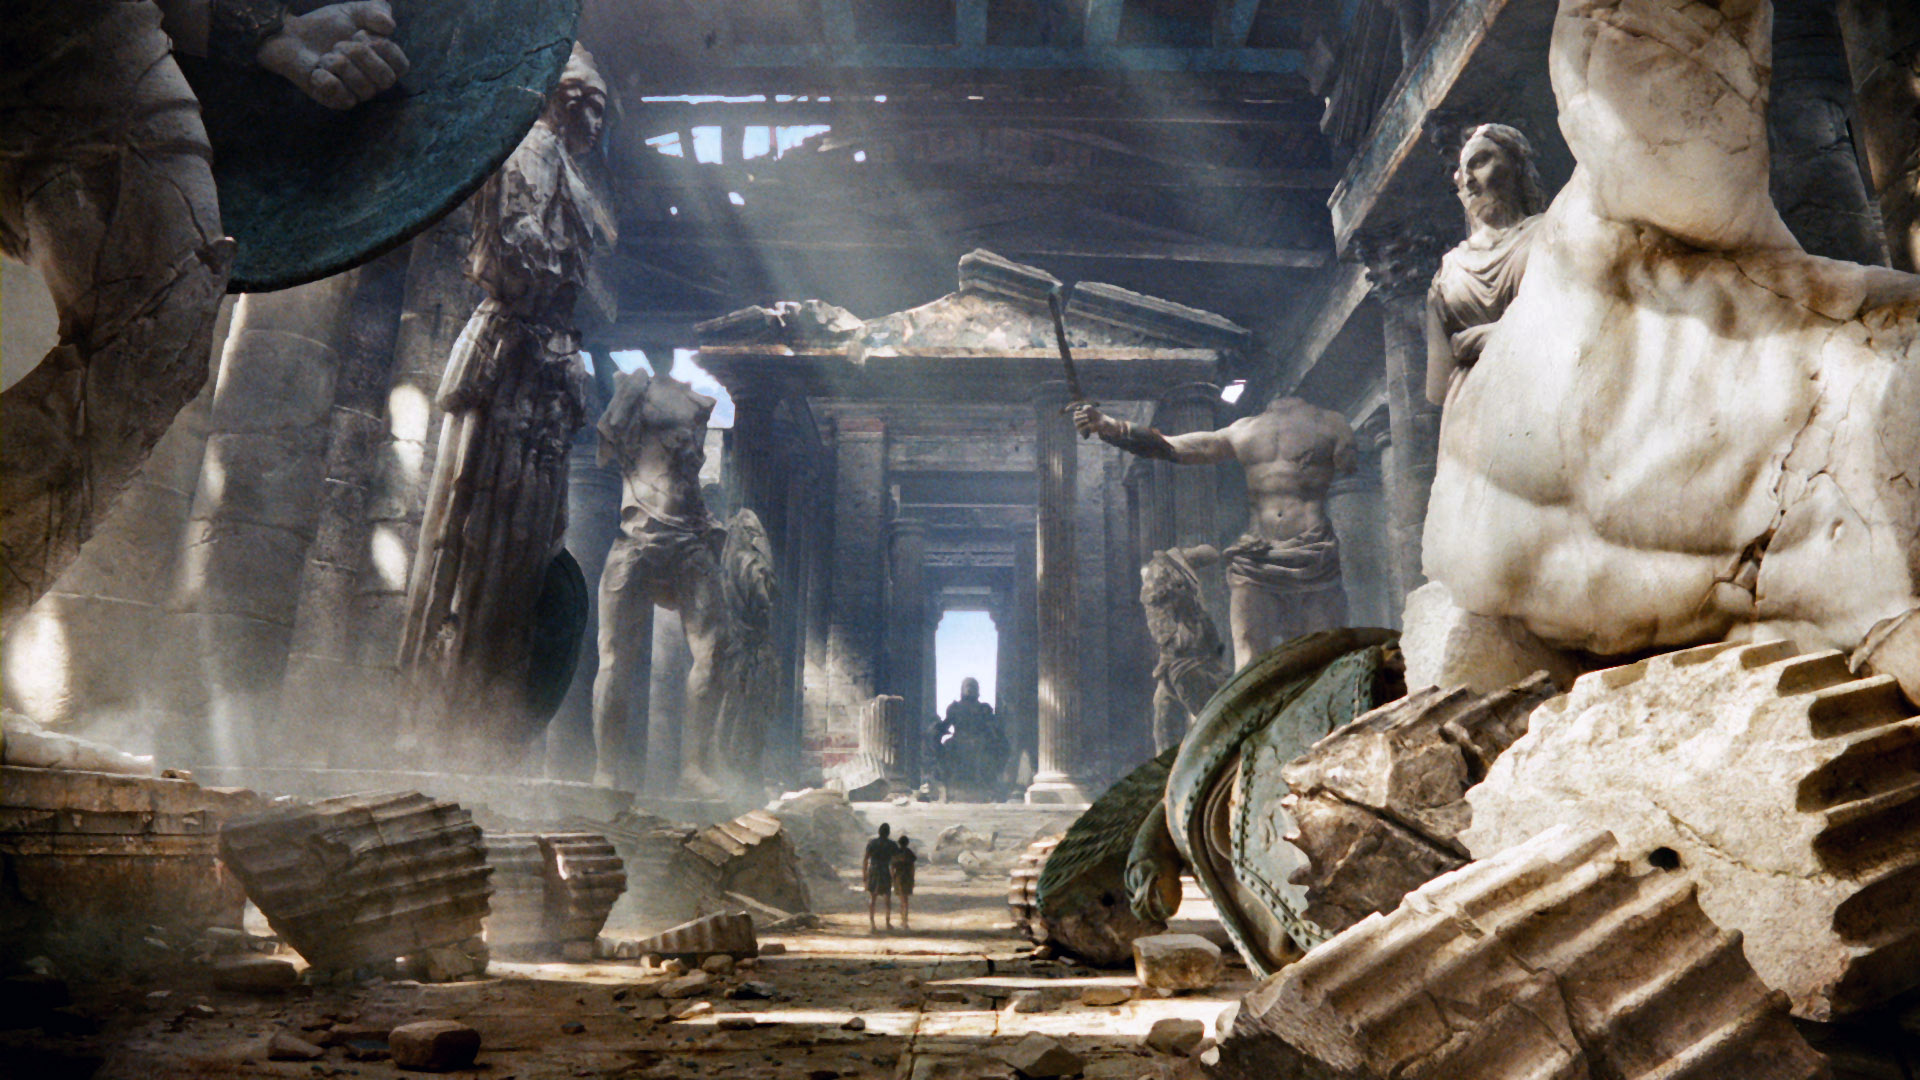 Download Wrath of the Titans Hollywood blu-ray movie 2012